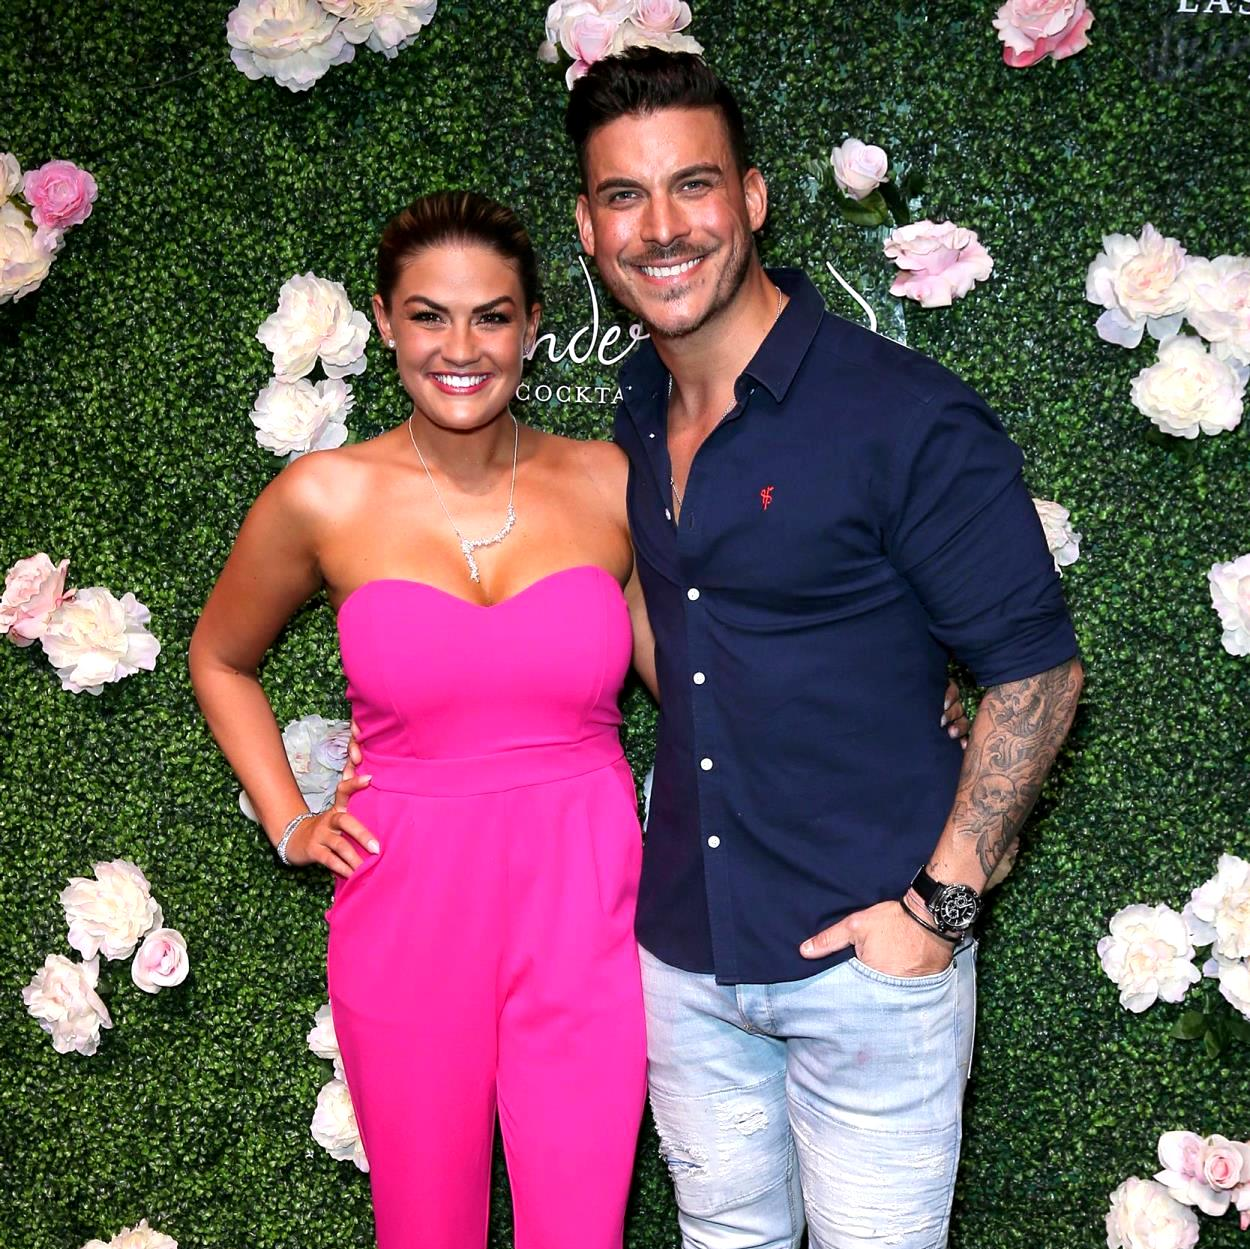 Vanderpump Rules' Jax Taylor and Brittany Cartwright's Wedding Date Revealed! Plus Jax Dishes on Having Kids